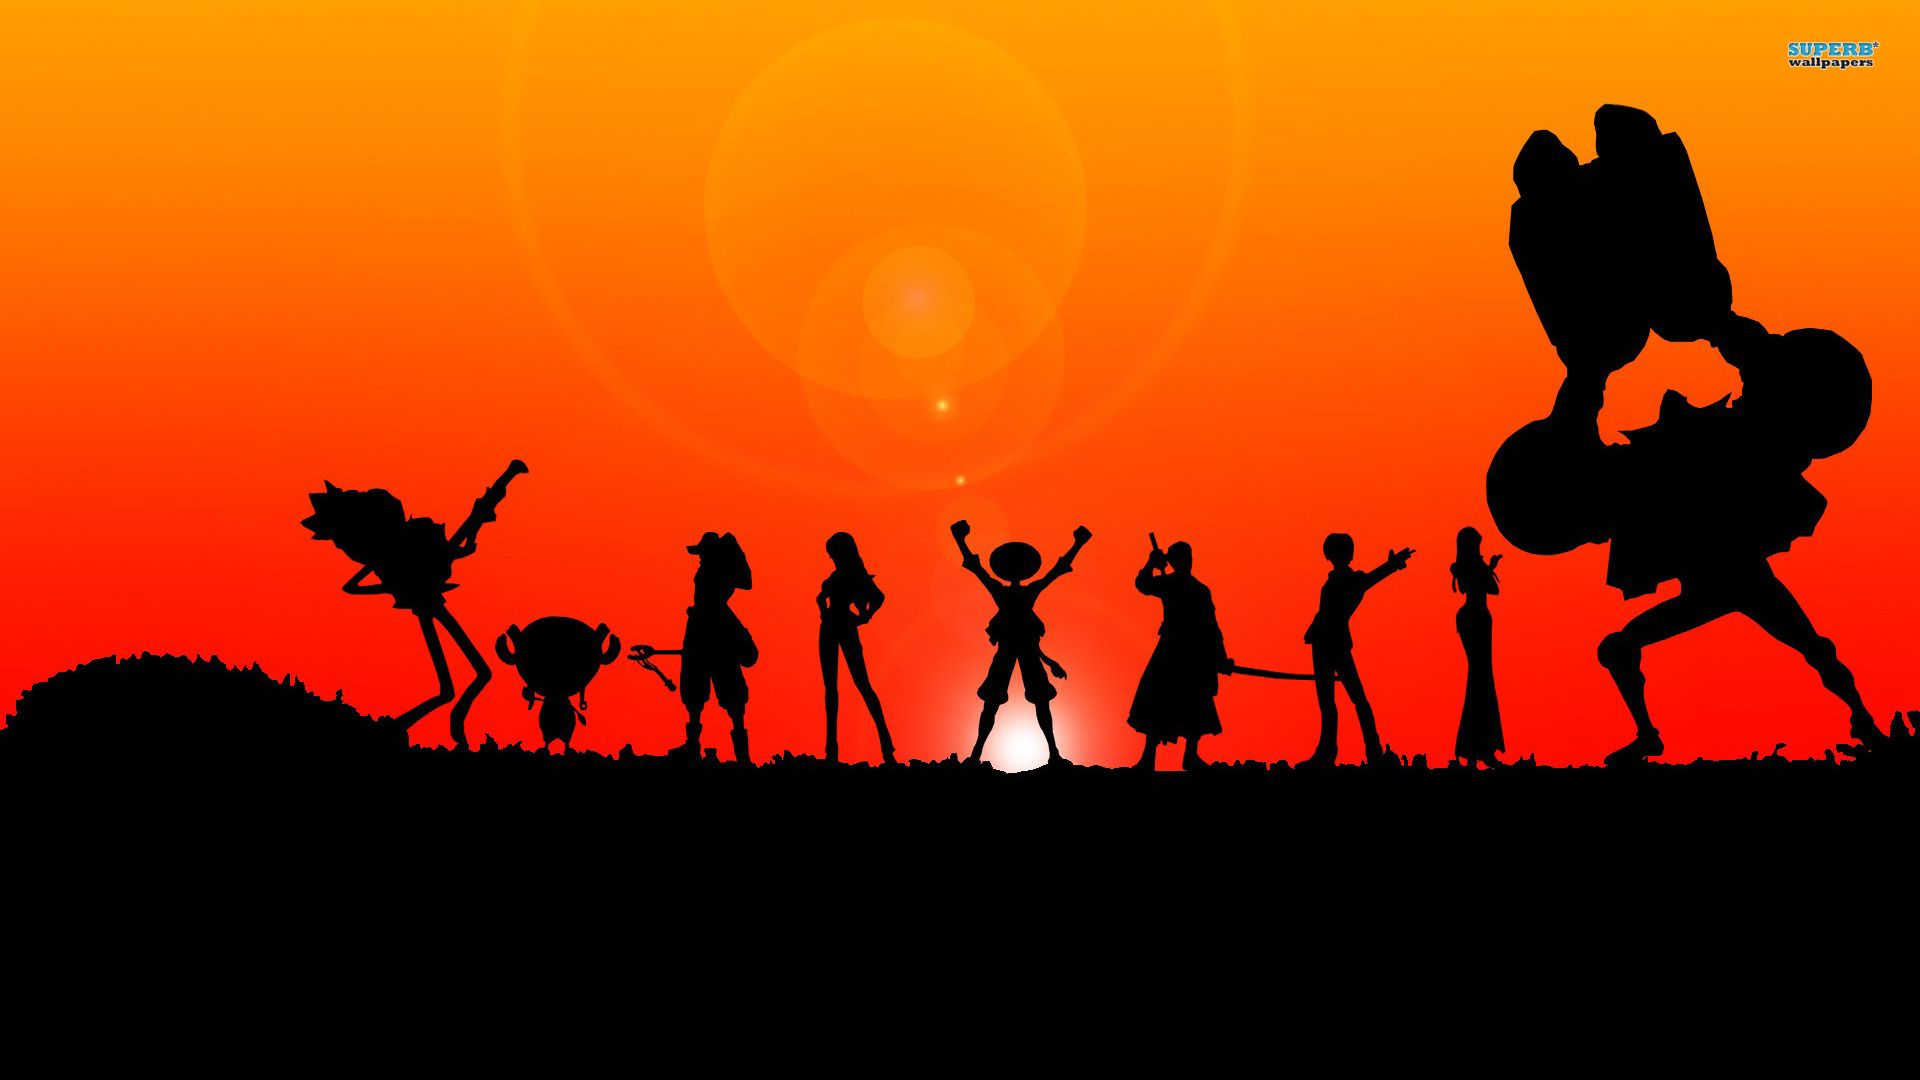 One Piece Wallpapers 1920x1080 1920x1080